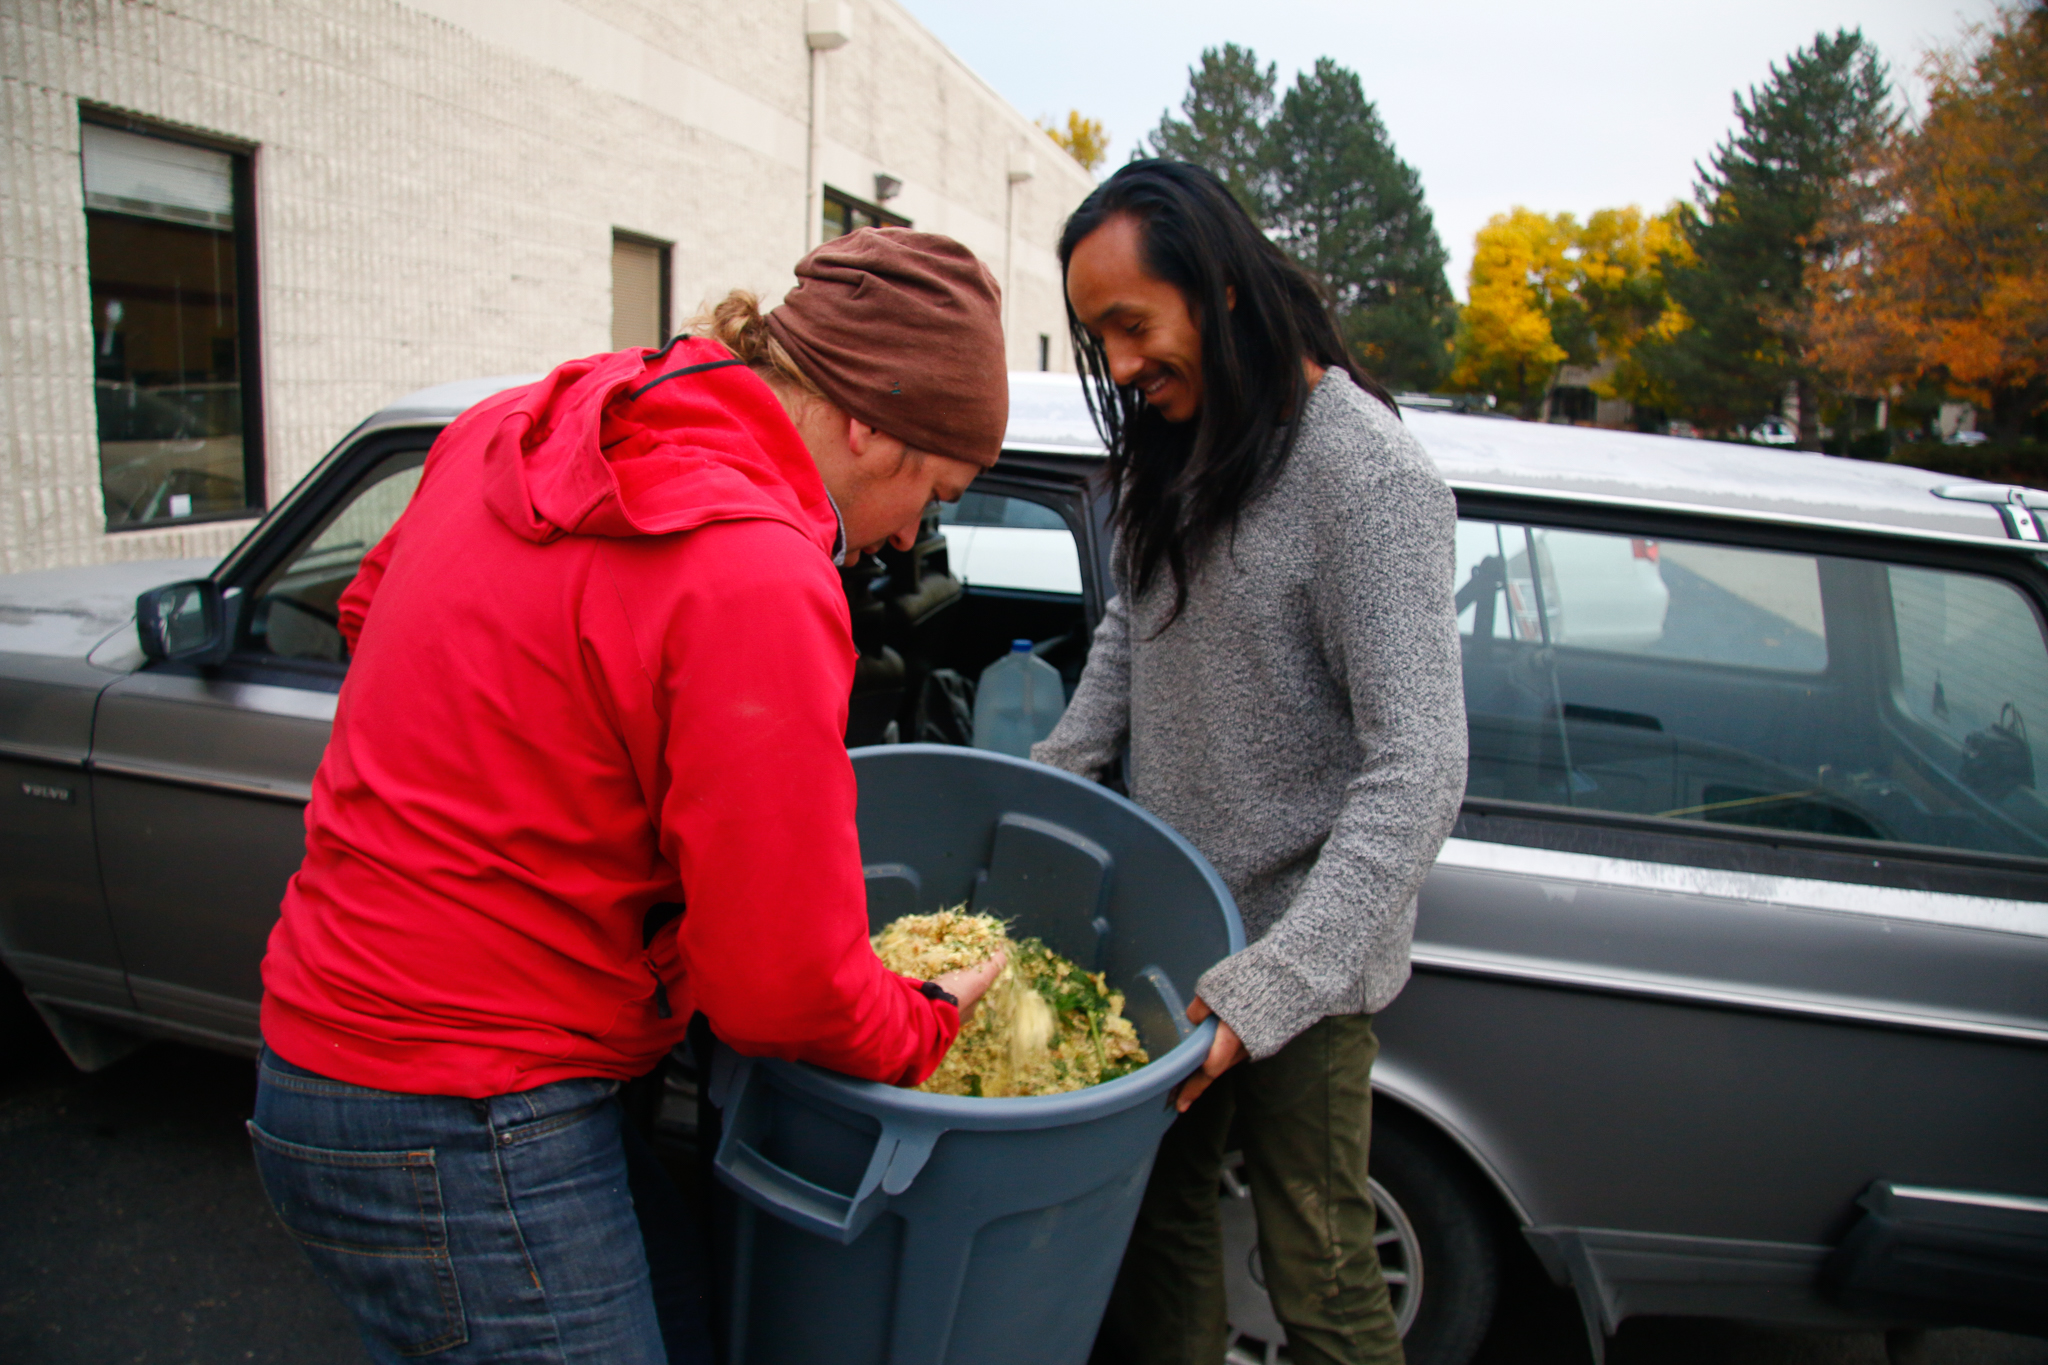 Xavier Rojas and Phil Taylor pick up a bin of ginger, parsley, and carrot shavings from Wonder Press juicers to feed to the bugs.